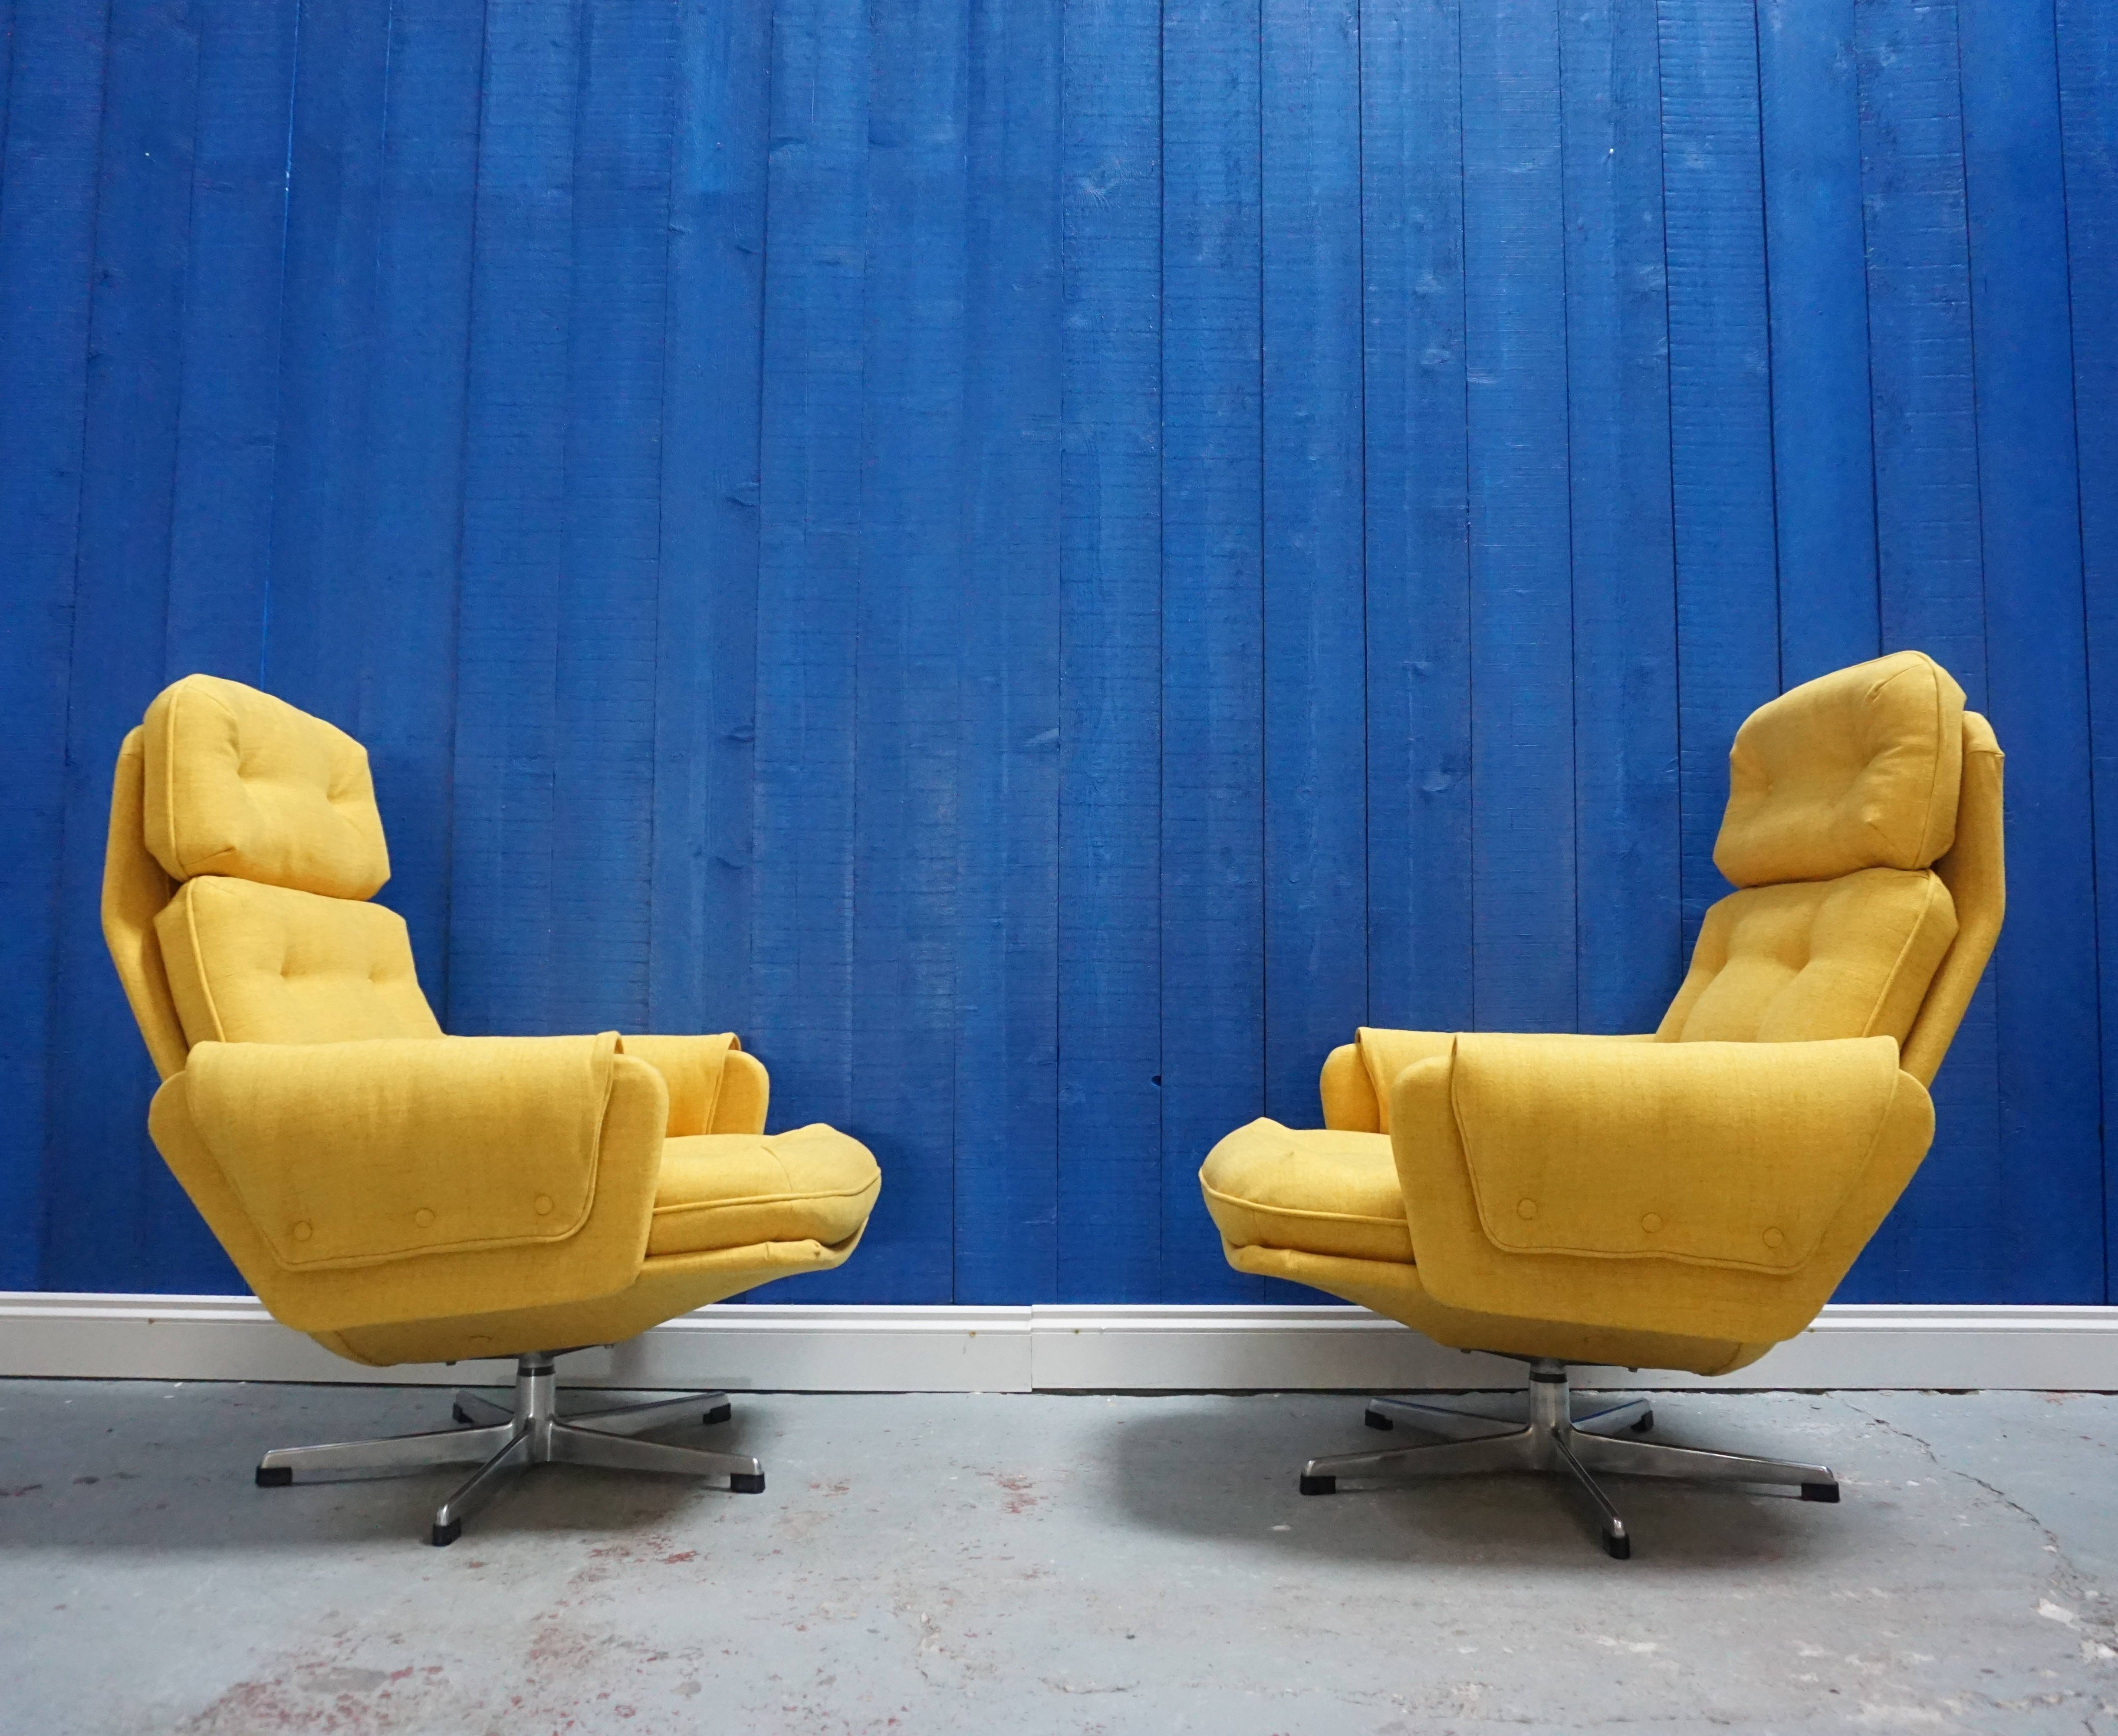 2 X Mid Century Modern Czech Swivel Chairs In Yellow 1960 S 95643